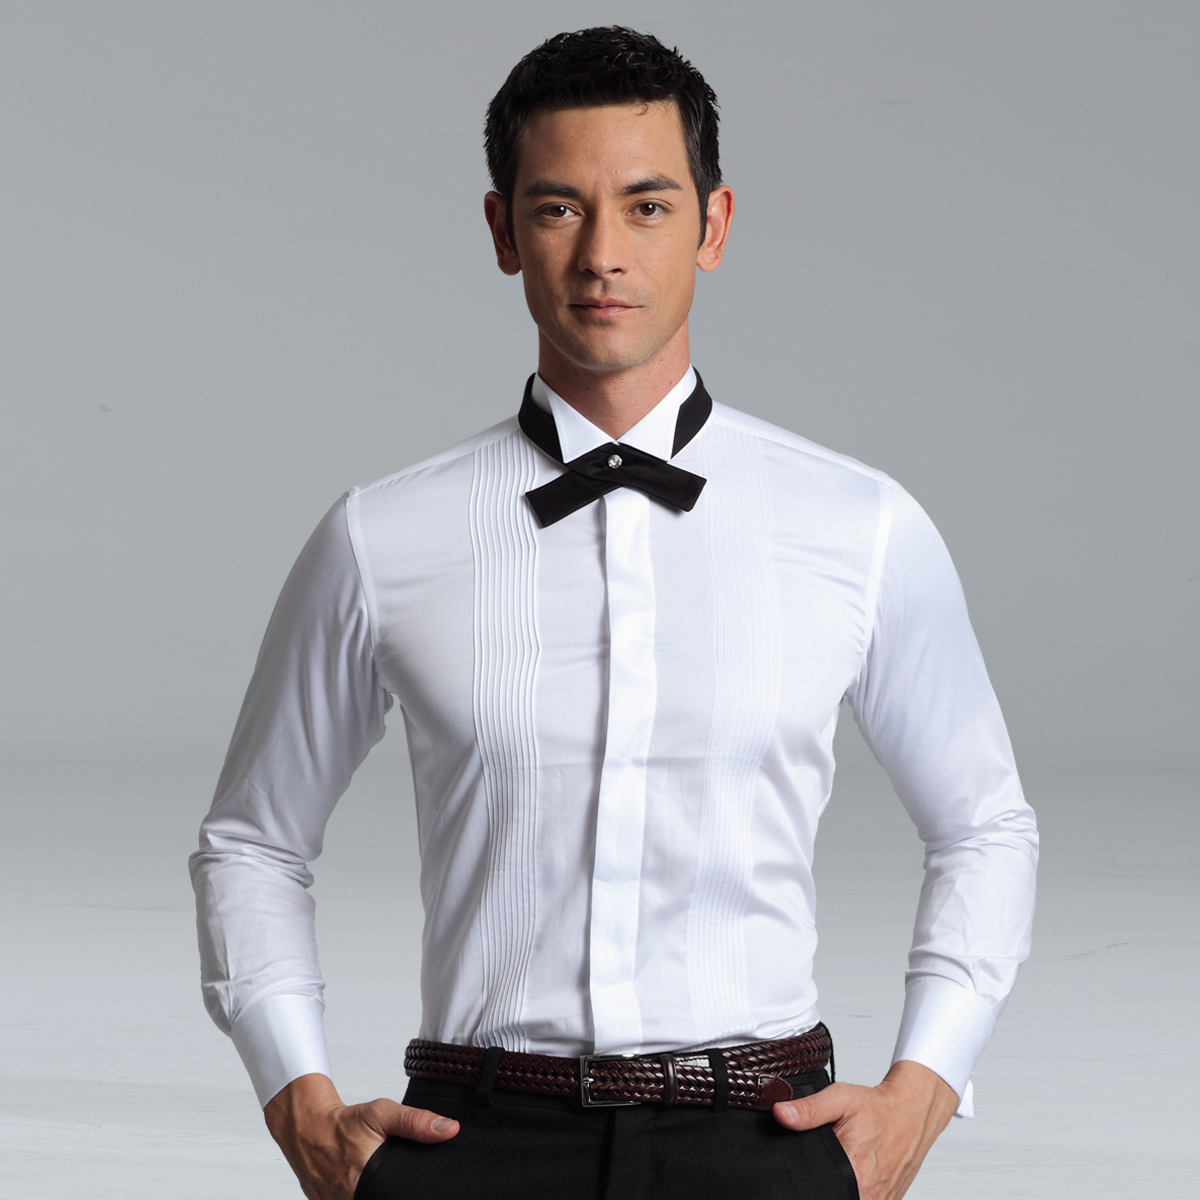 Tuxedos Online offers a large selection of top quality Tuxedo Shirts and Dress Shirts and Formal Shirts for men. Free shipping on orders over $